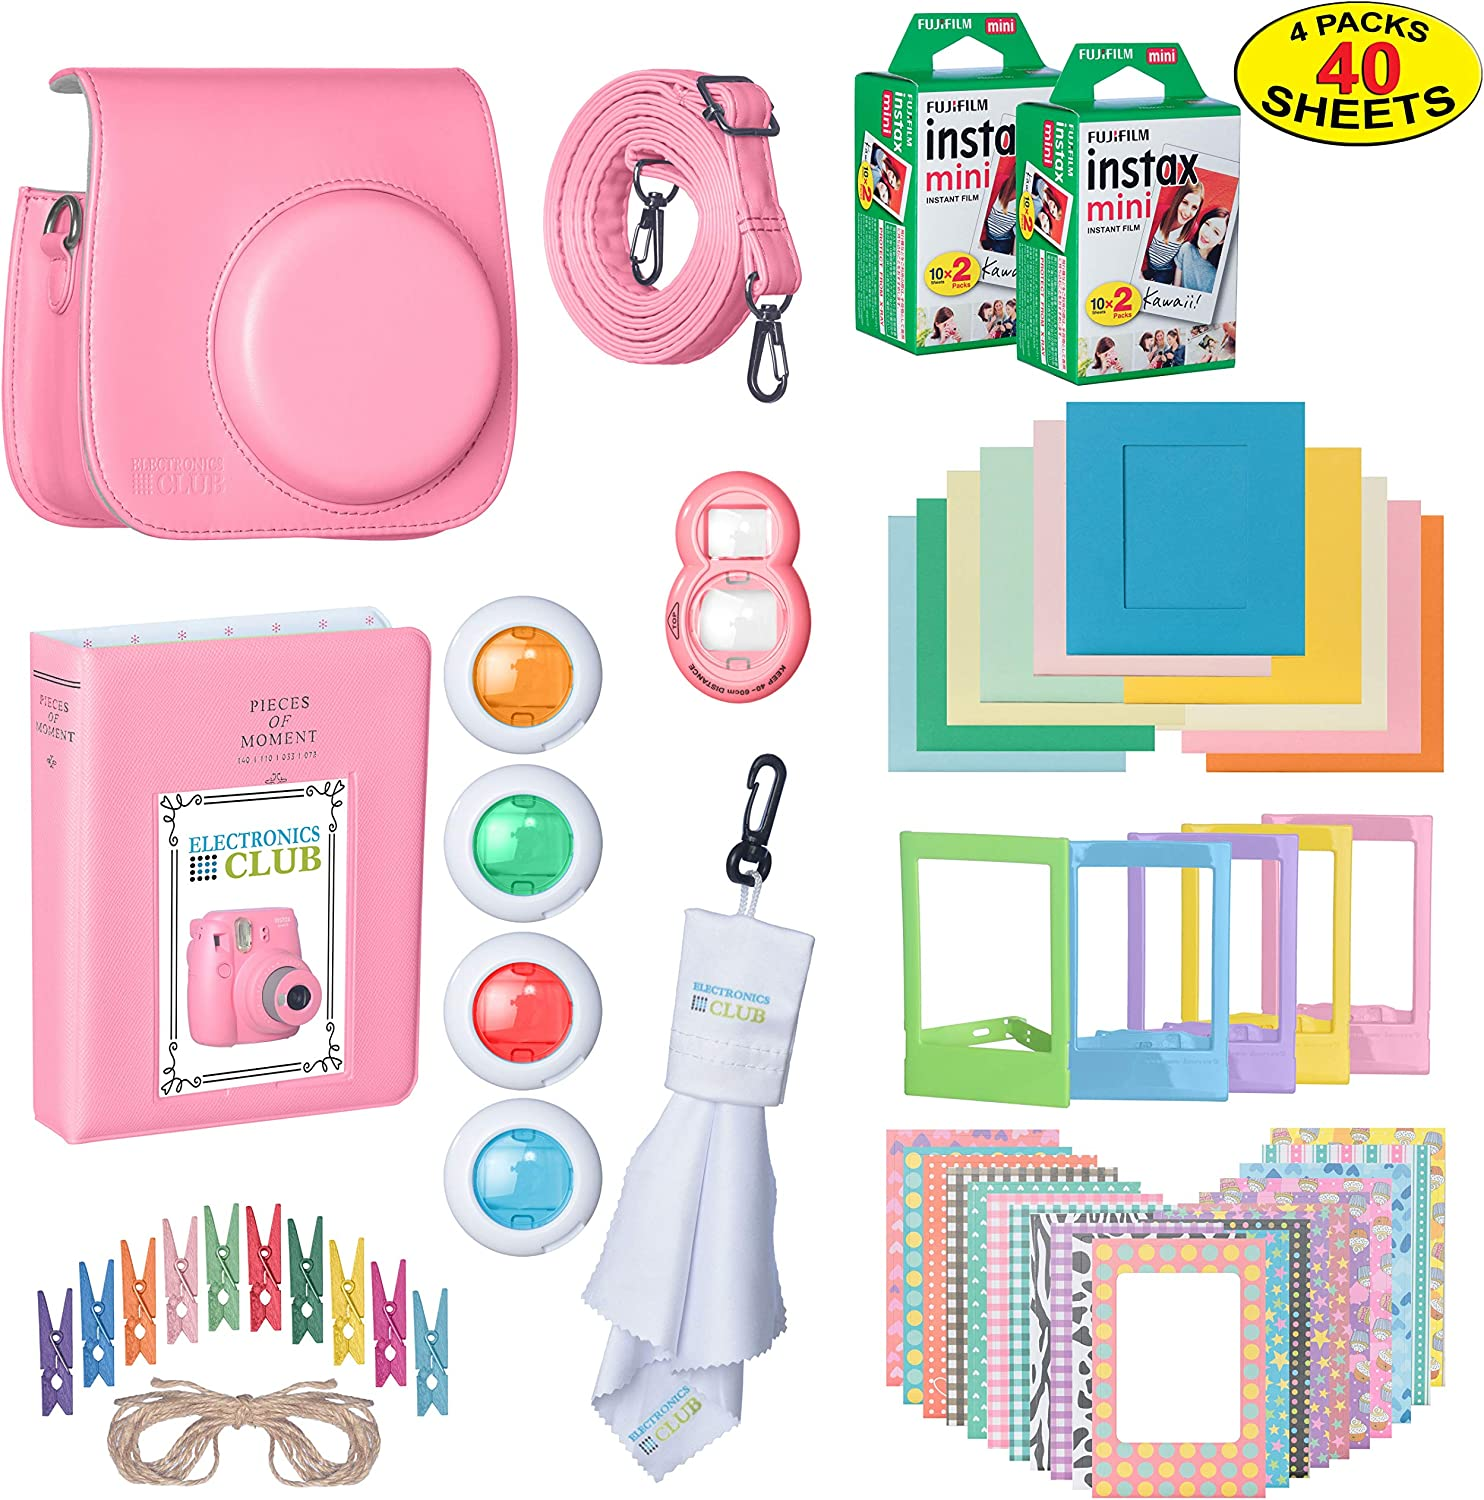 The Ultimate Accessories Kit Bundle for Fujifilm Instax Mini 9 Instant Film Camera | Includes Leather Camera Case + 100 Sheets of Instant Film + Photo Album + Frames + Close-Up Selfie Lenses + More